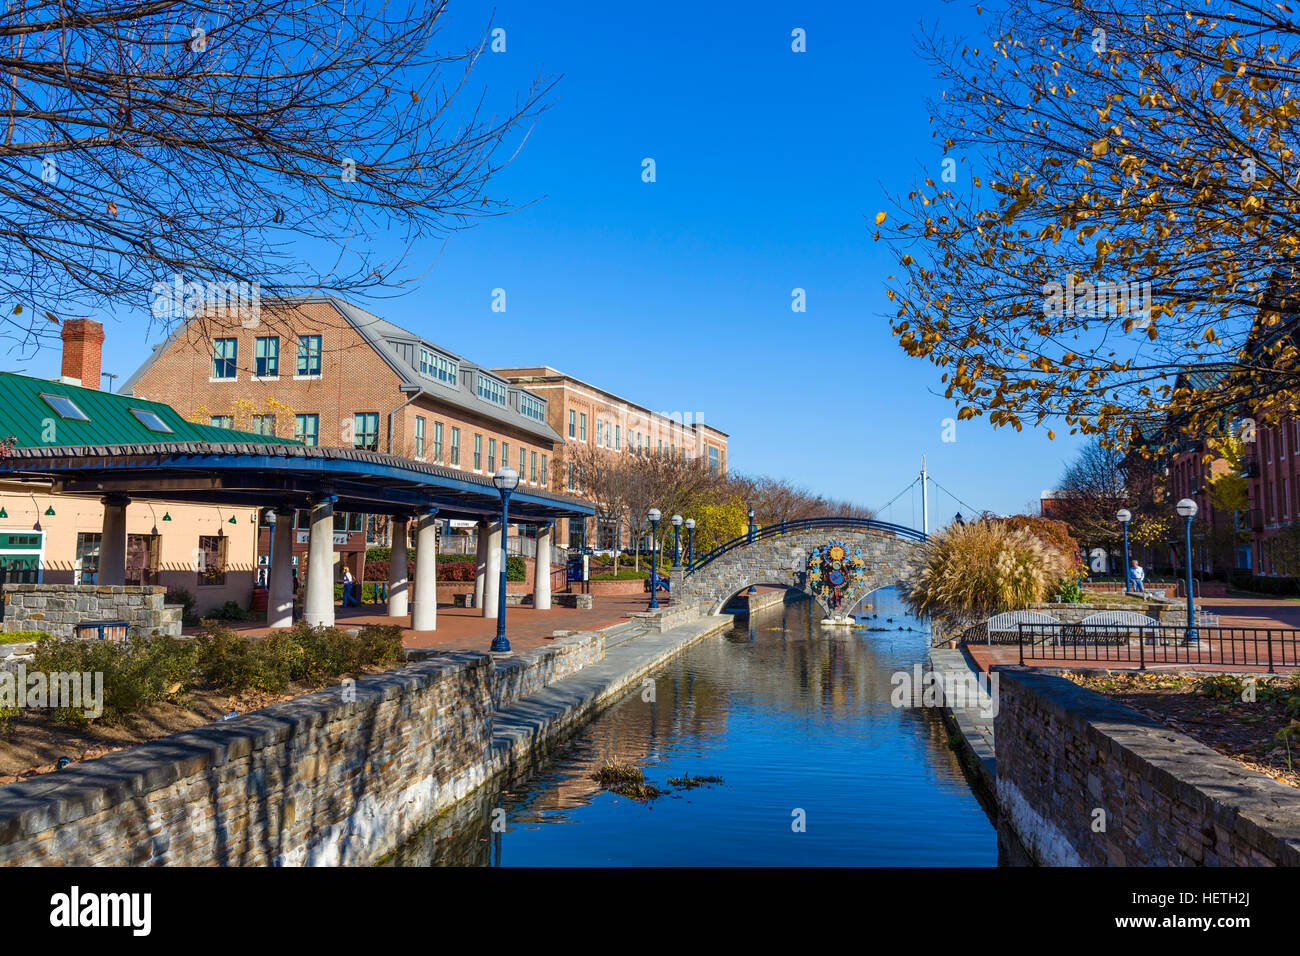 Frederick, Maryland. Carroll Creek Park from Market Street in downtown Frederick, MD, USA - Stock Image